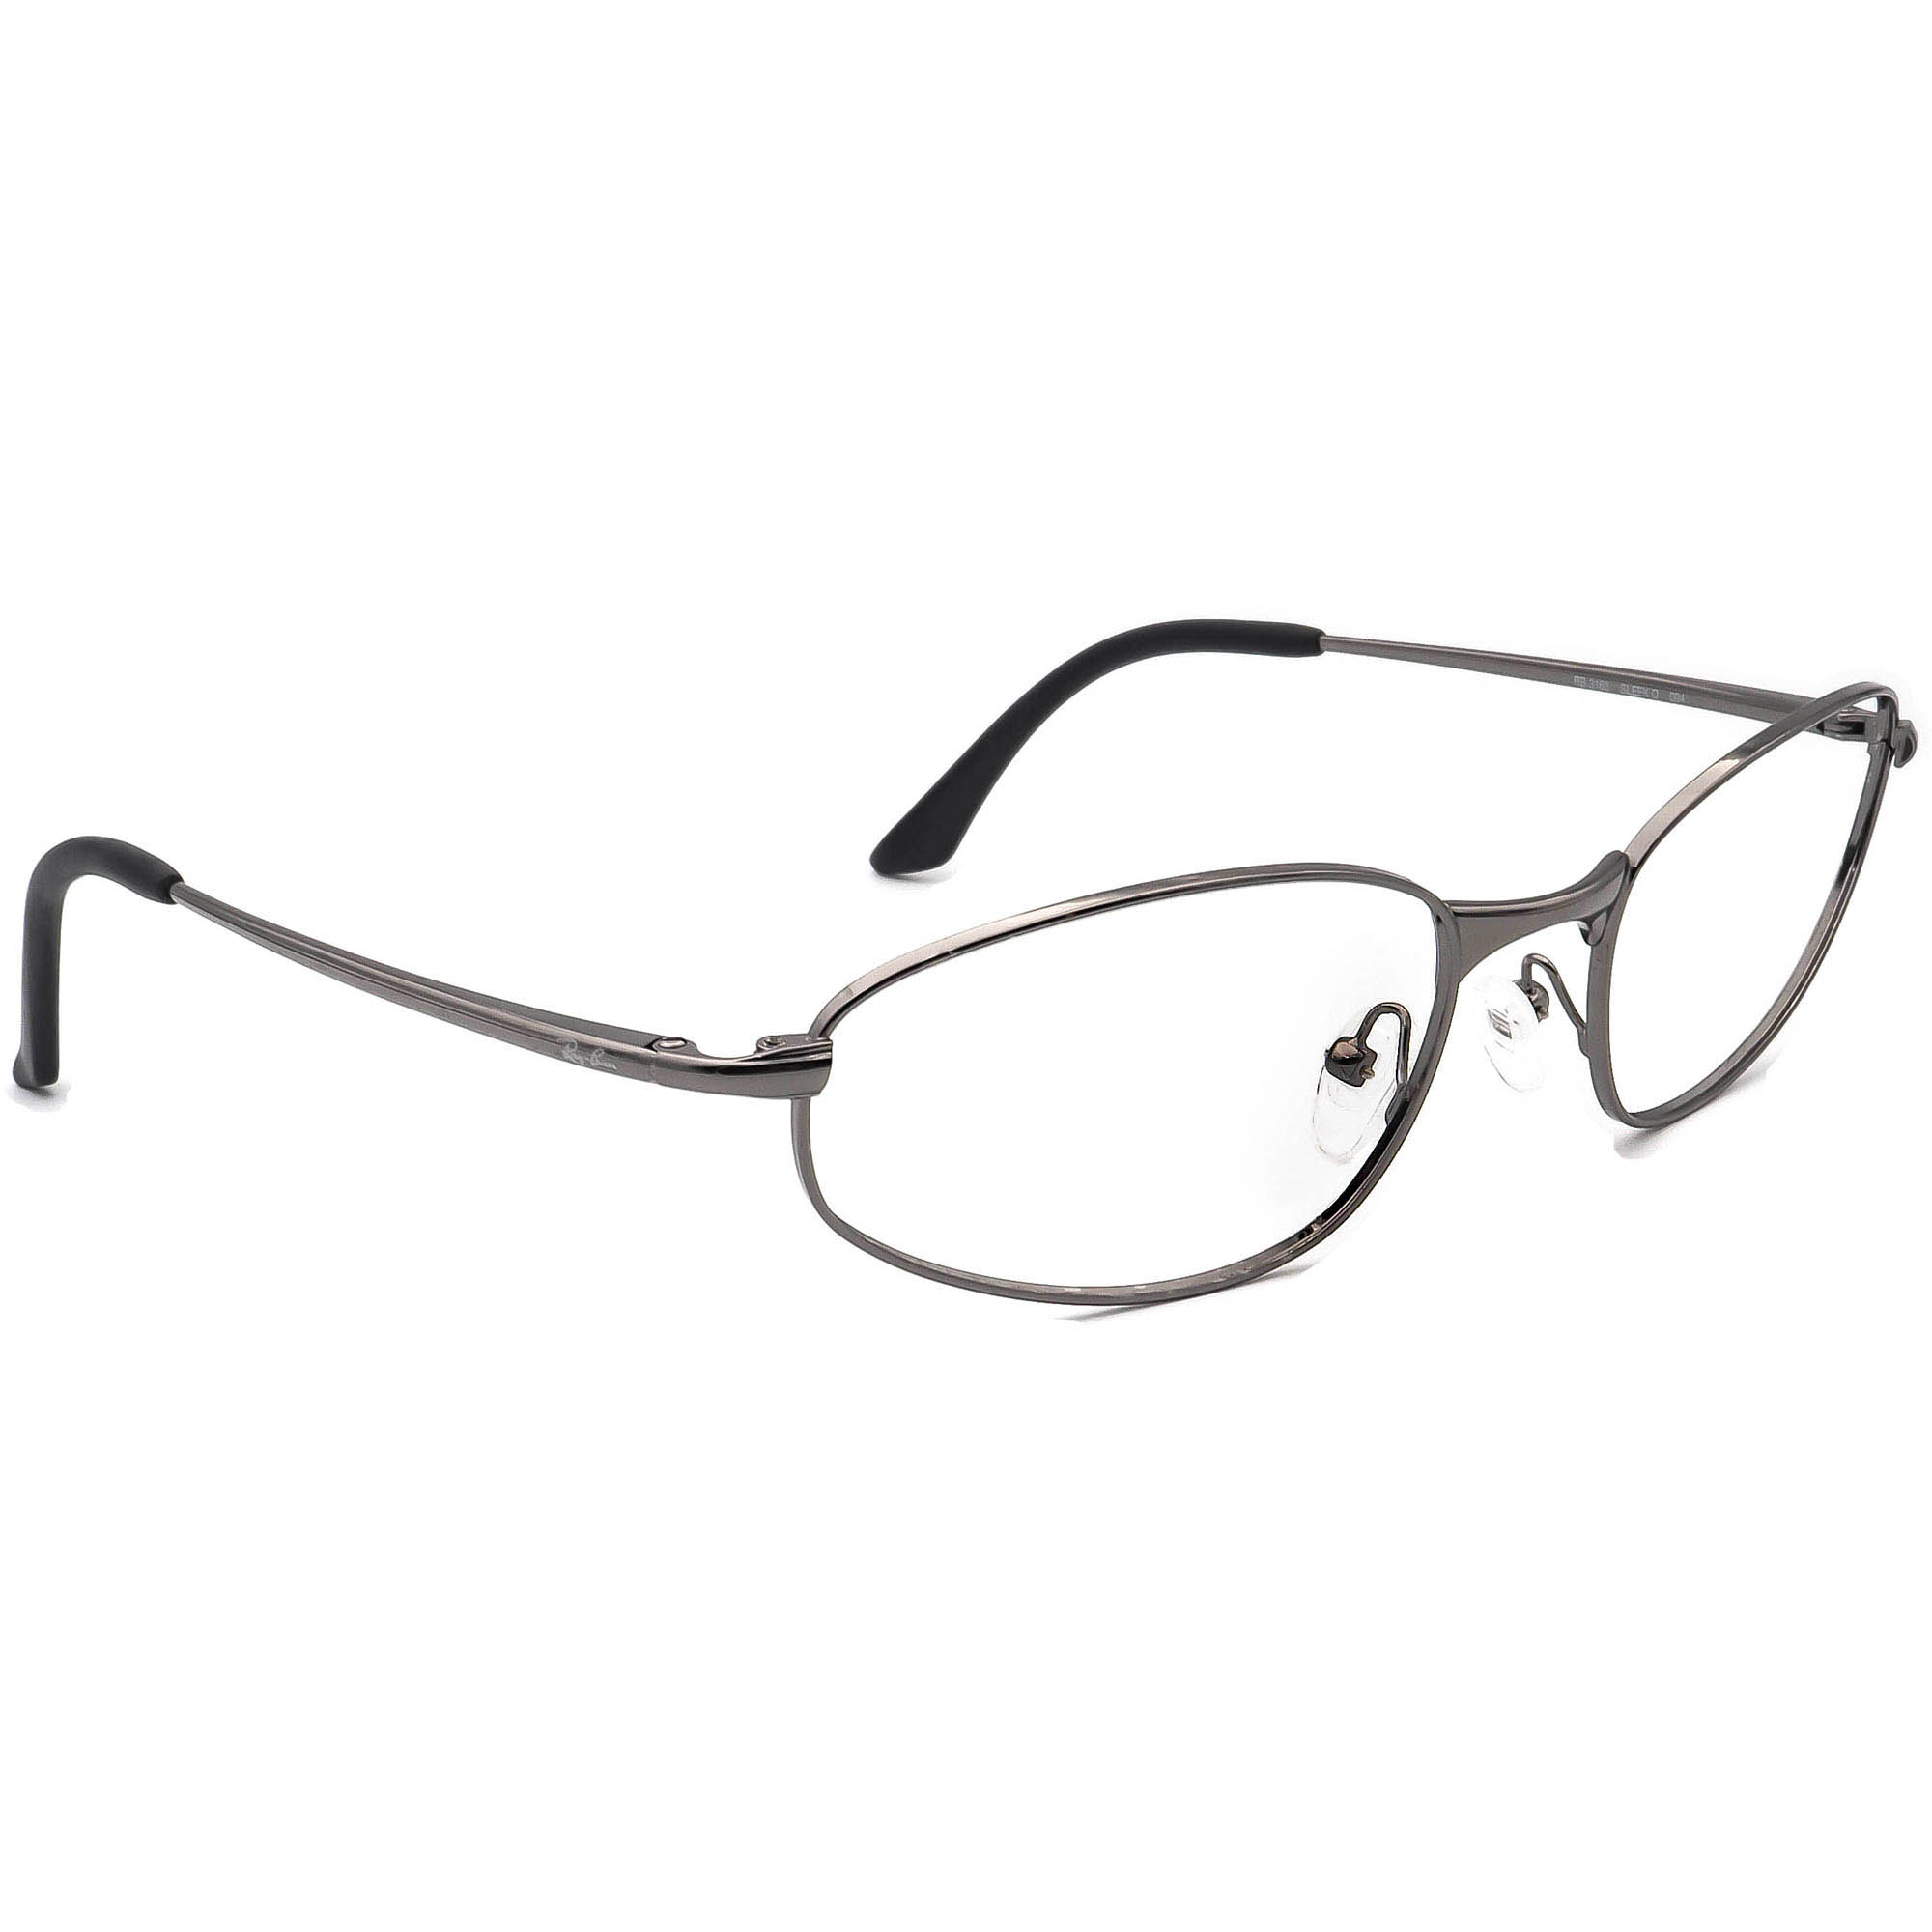 Ray-Ban RB 3163 Sleek O 004 Sunglasses Frame Only